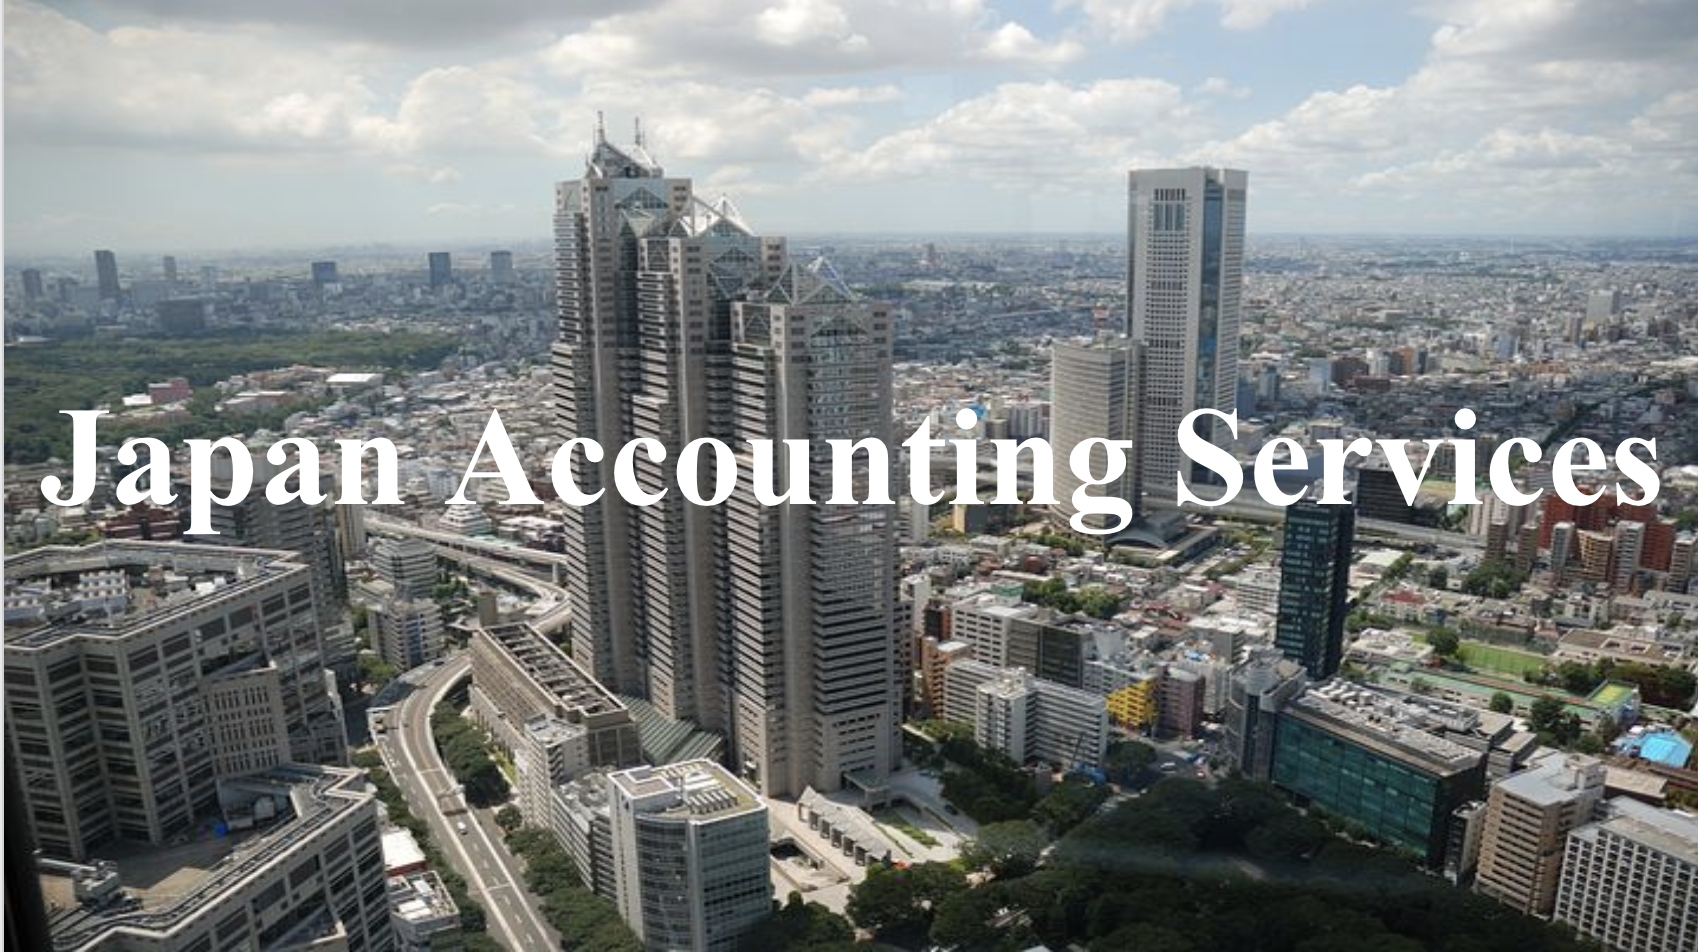 Japan Accounting Services